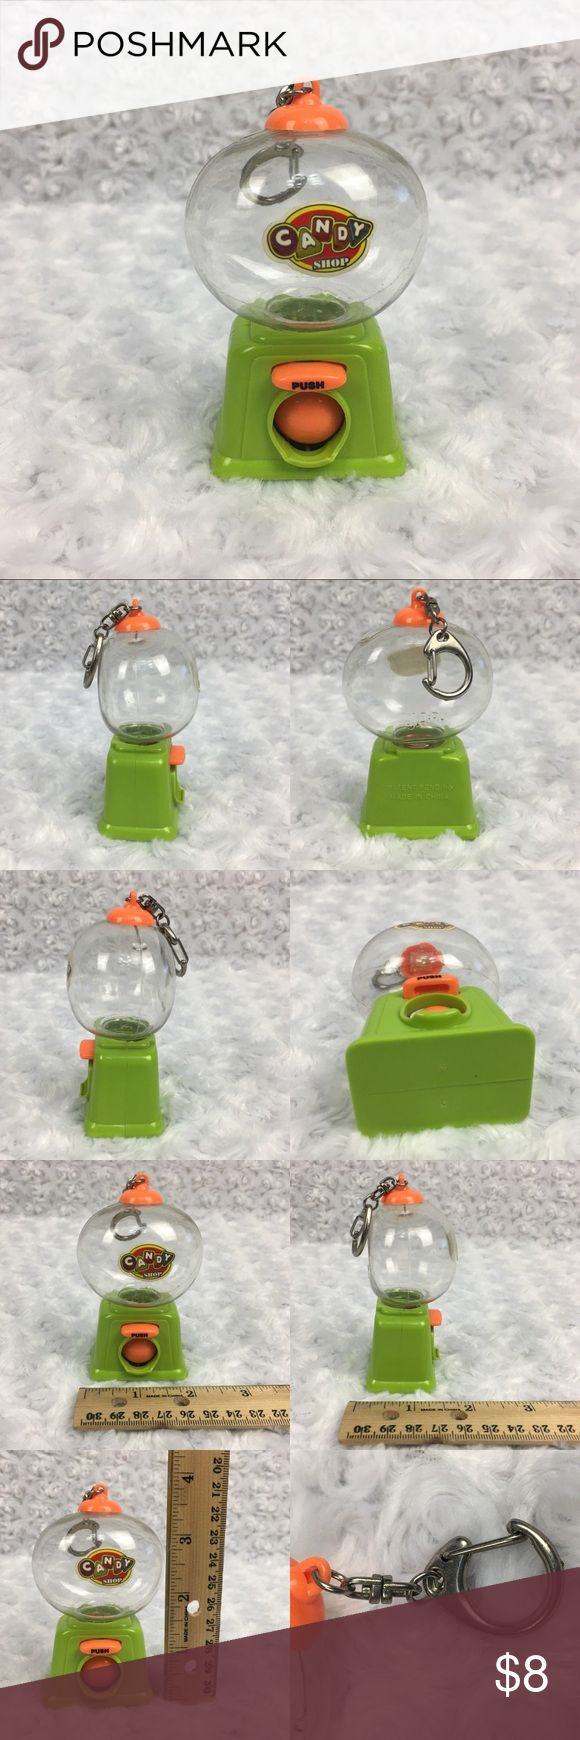 "Bubble Gum Dispenser Small Plastic Keychain Toy Bubble Gum Dispenser Small Keychain Plastic Candy Shop Green Orange Toy   Condition: very light/faint scratches on the clear plastic bubble on top. SEE PHOTOS  * This listing is for ONE (1) Keychain * - Cute bubble gum candy dispenser - when ""push"" button is pushed orange door on bottom opens - clear bubble comes off by twisting & pulling up - candy/bubble gum goes in clear bubble Please note: Color may vary slightly due to different display…"